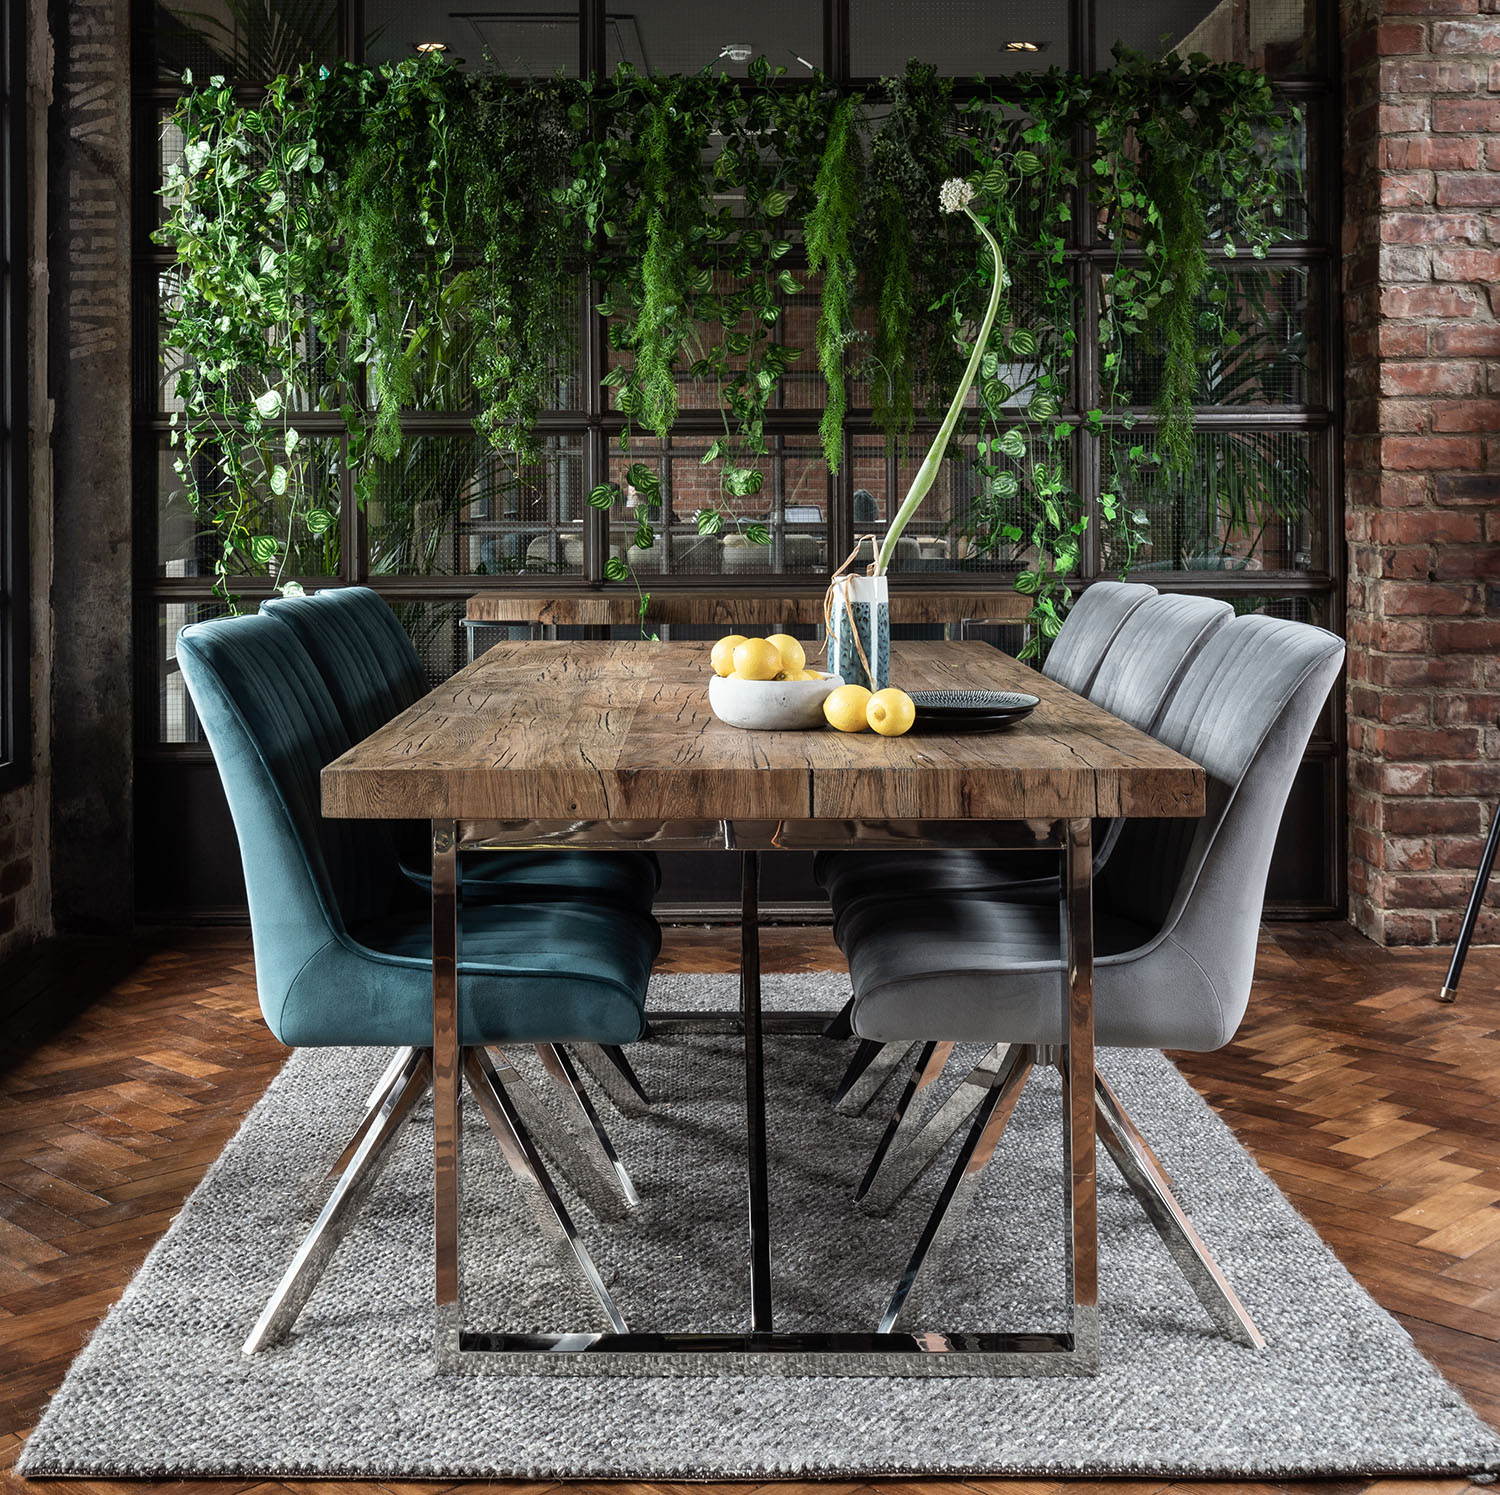 Ardeche Dining Set Table X3 Chloe Chairs In Teal And X3 Chloe Chairs In Grey Collingwood Batchellor